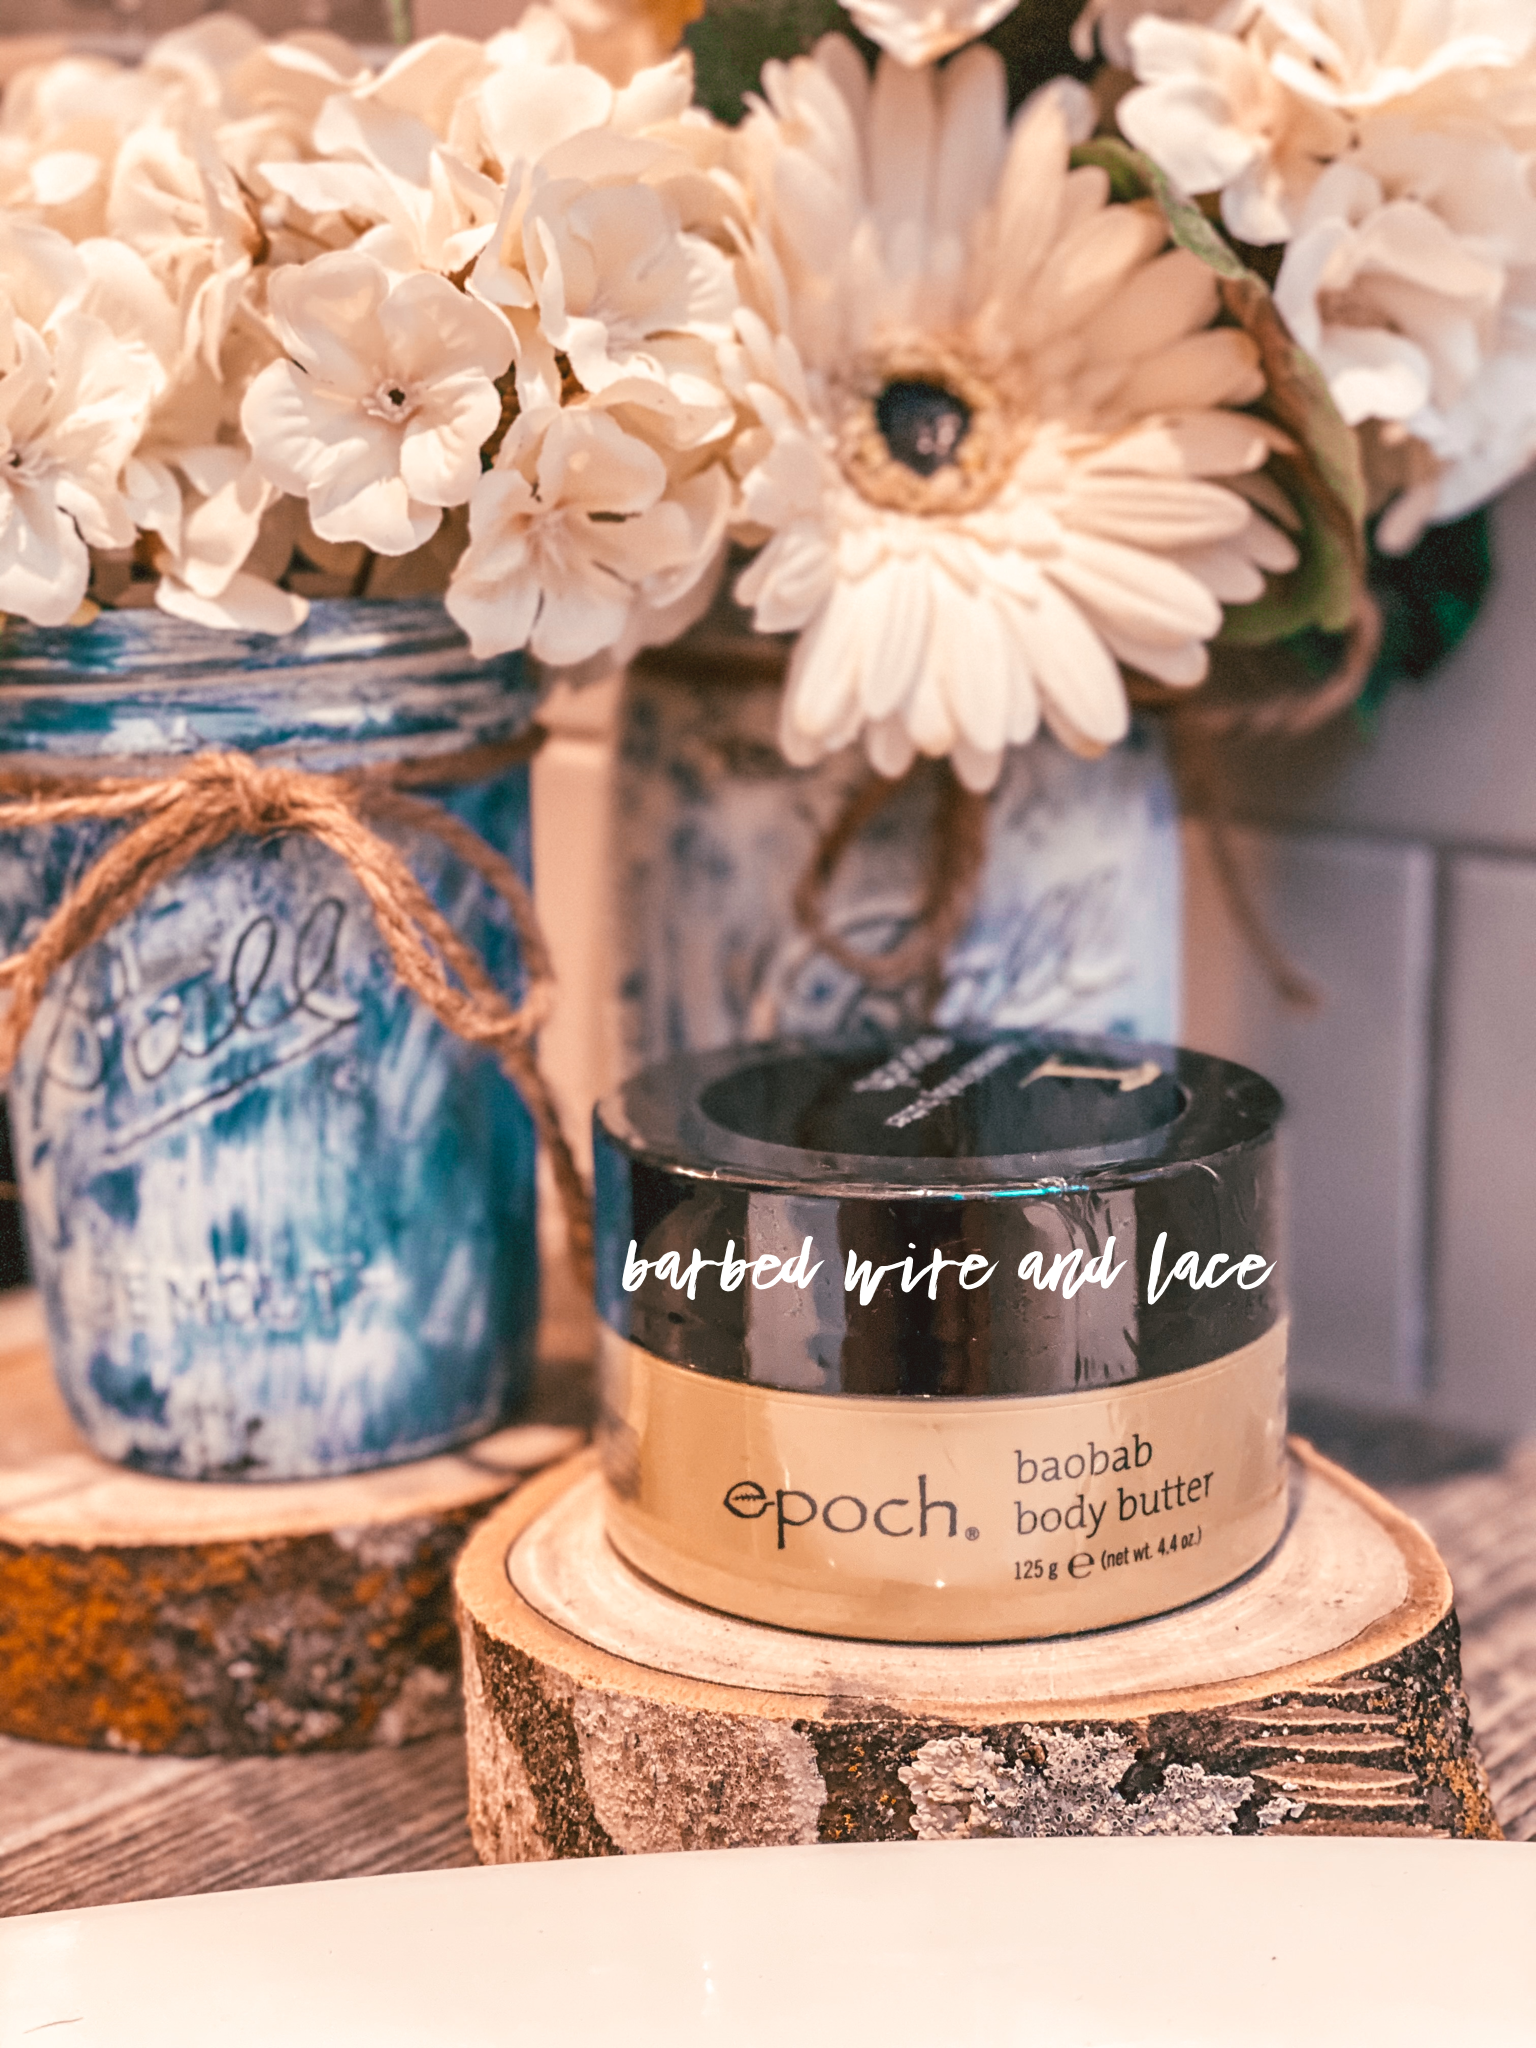 Epoch Body Butter